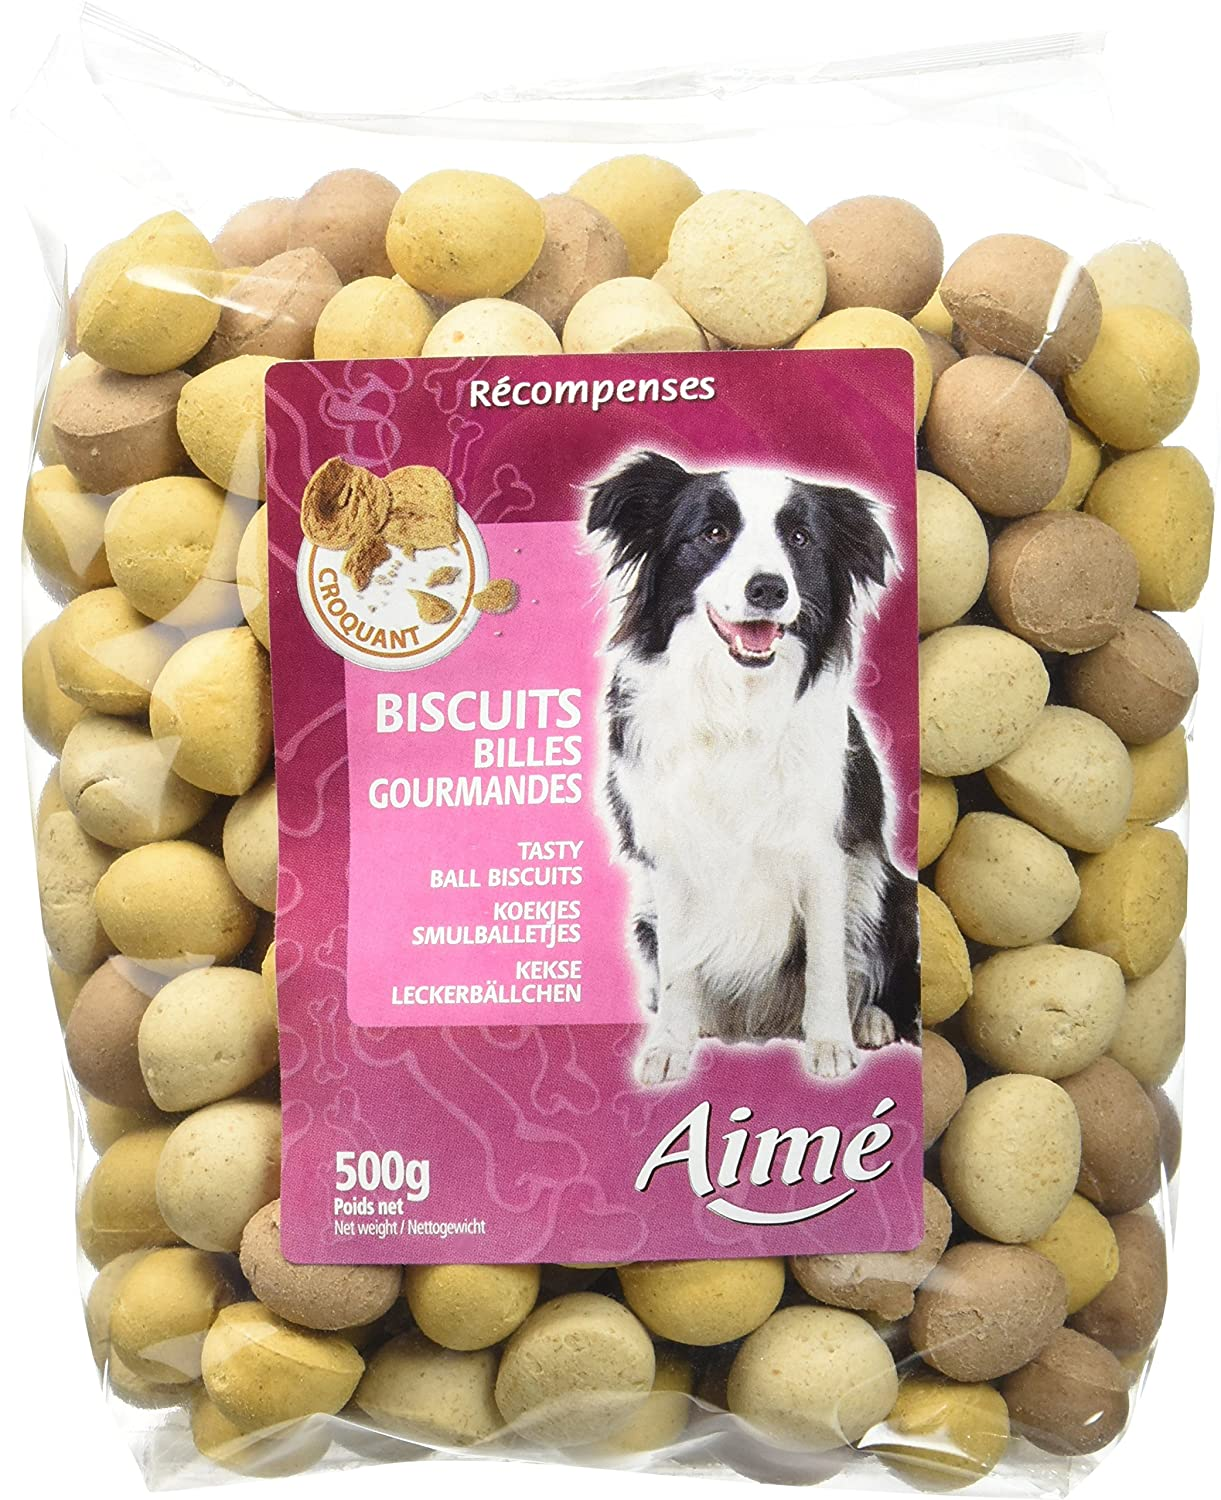 Aime Biscuits Billes Gourmandes pour Chien 0, 5 Kg Agrobiothers 901571